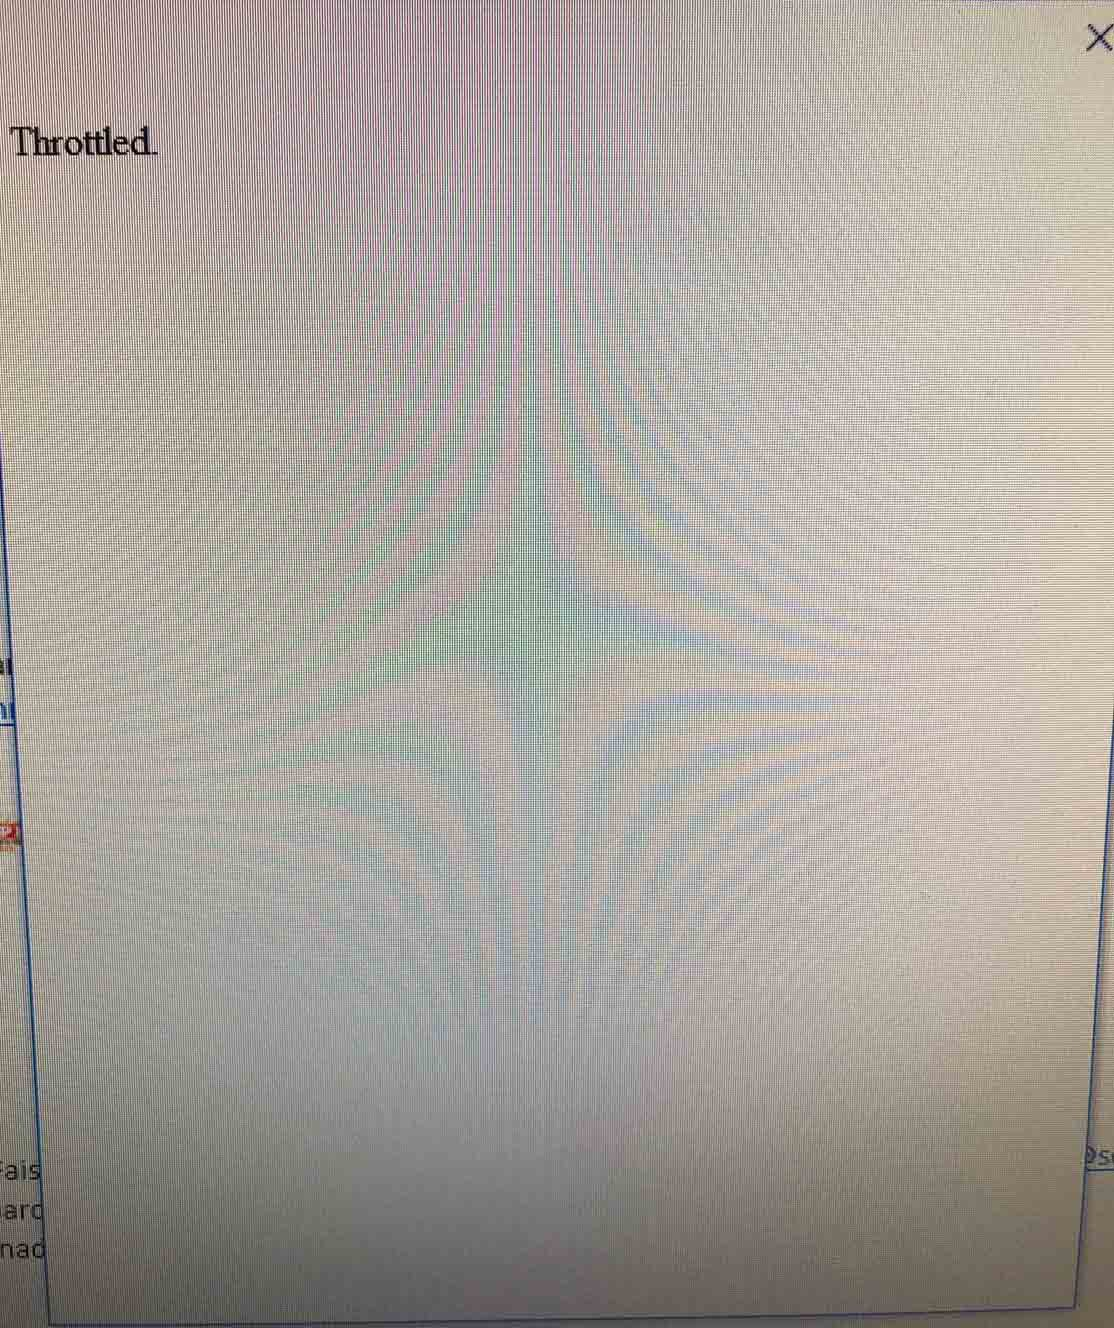 Blank Window with the word Throttled in it. 392f24fc-8b8c-48ba-94a1-7bc026be594d?upload=true.jpg